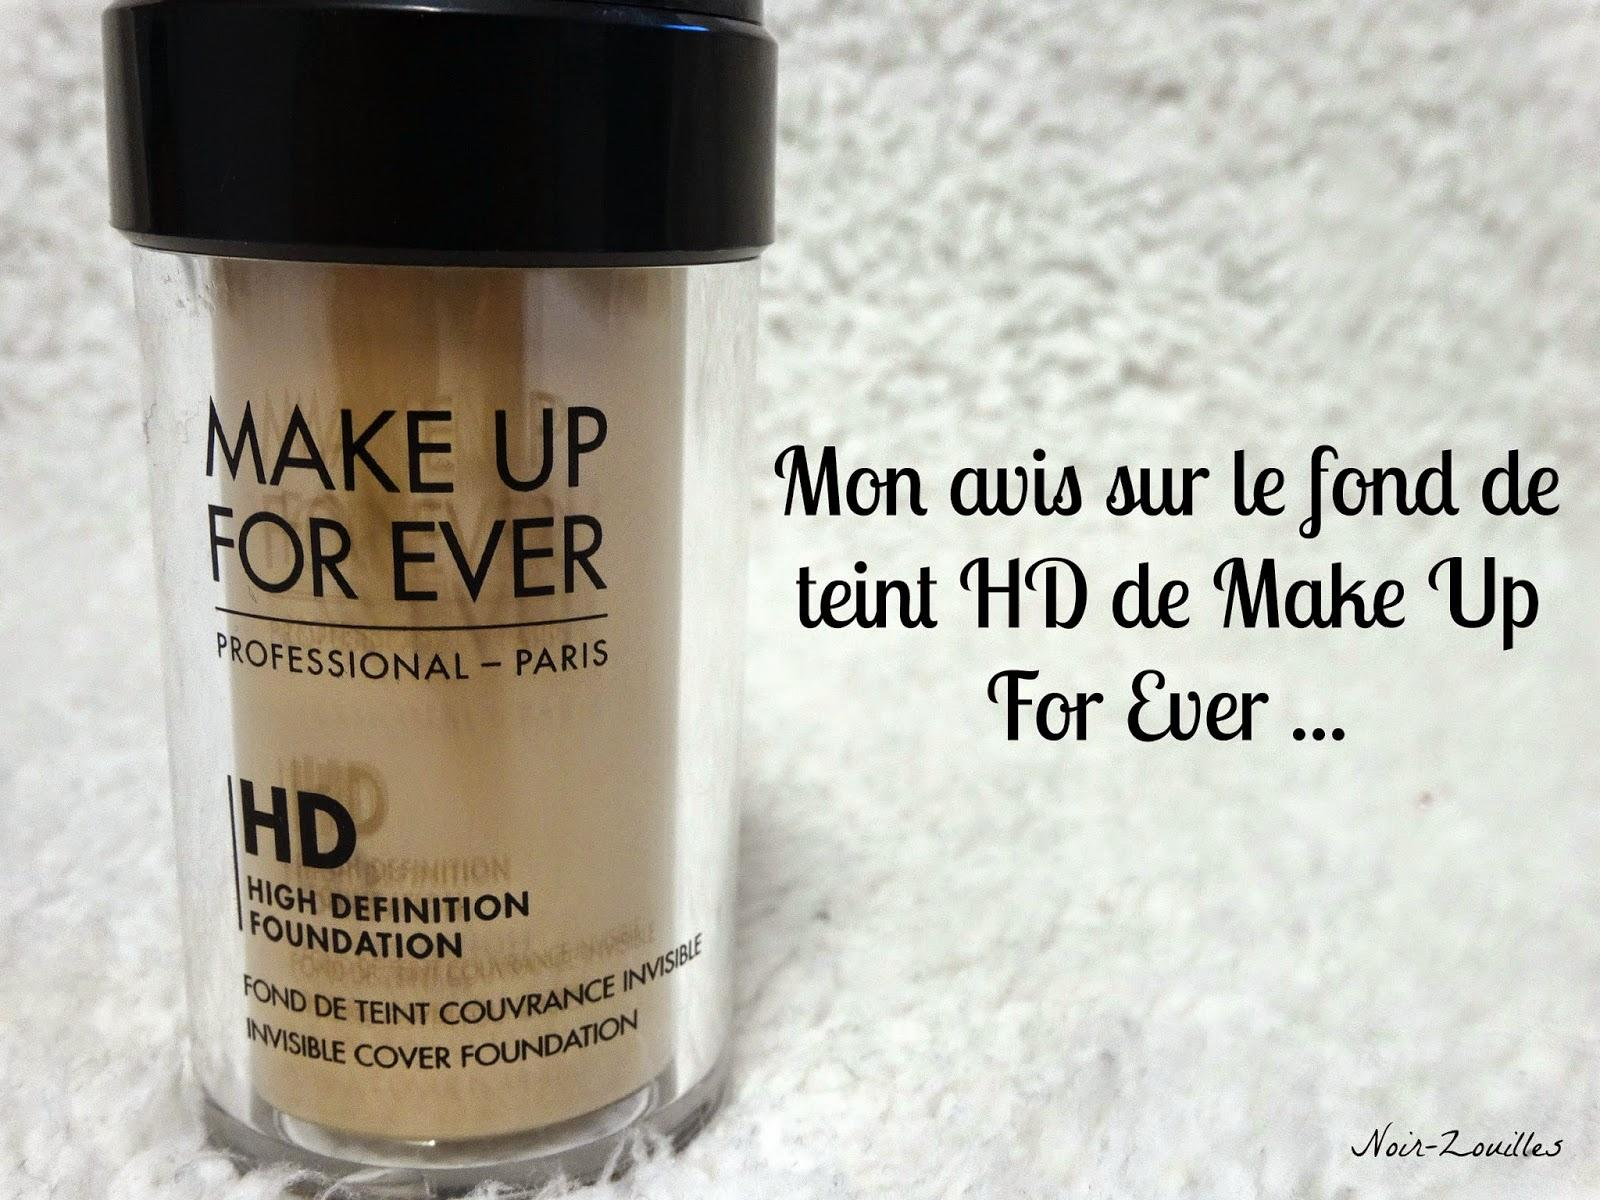 Mon avis sur le fond de teint HD de Make Up For Ever...